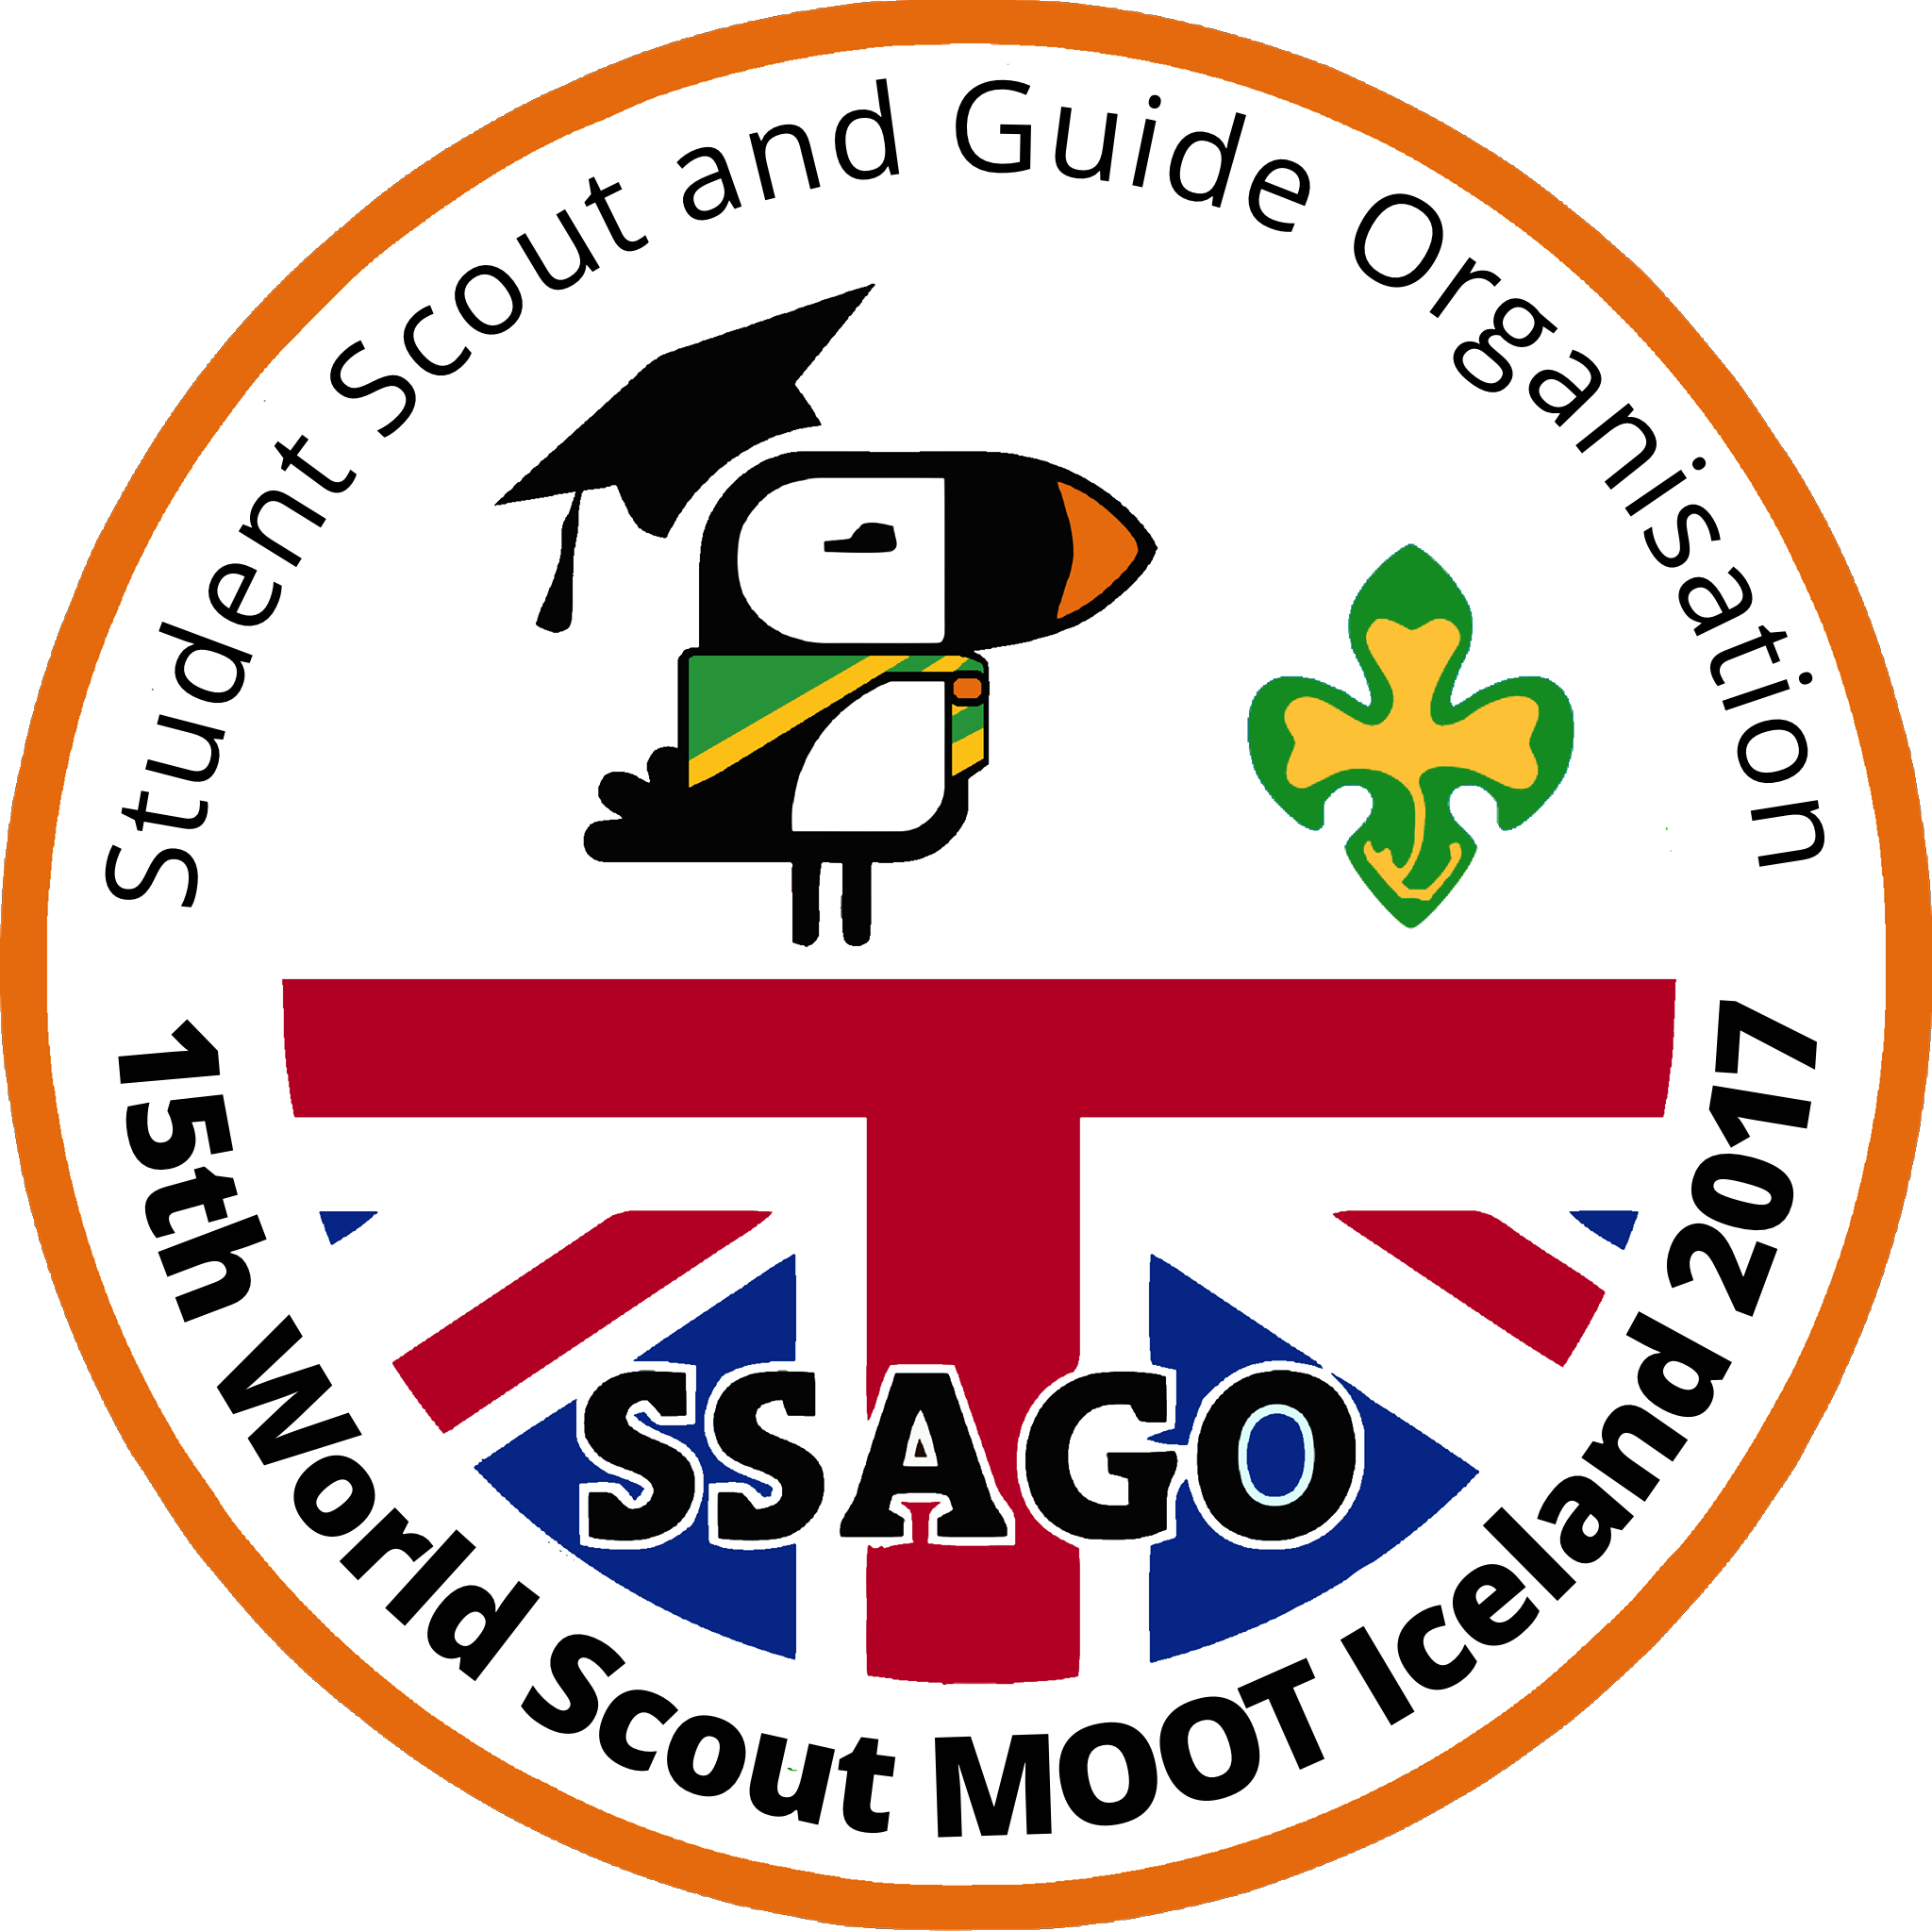 15th World Scout MOOT